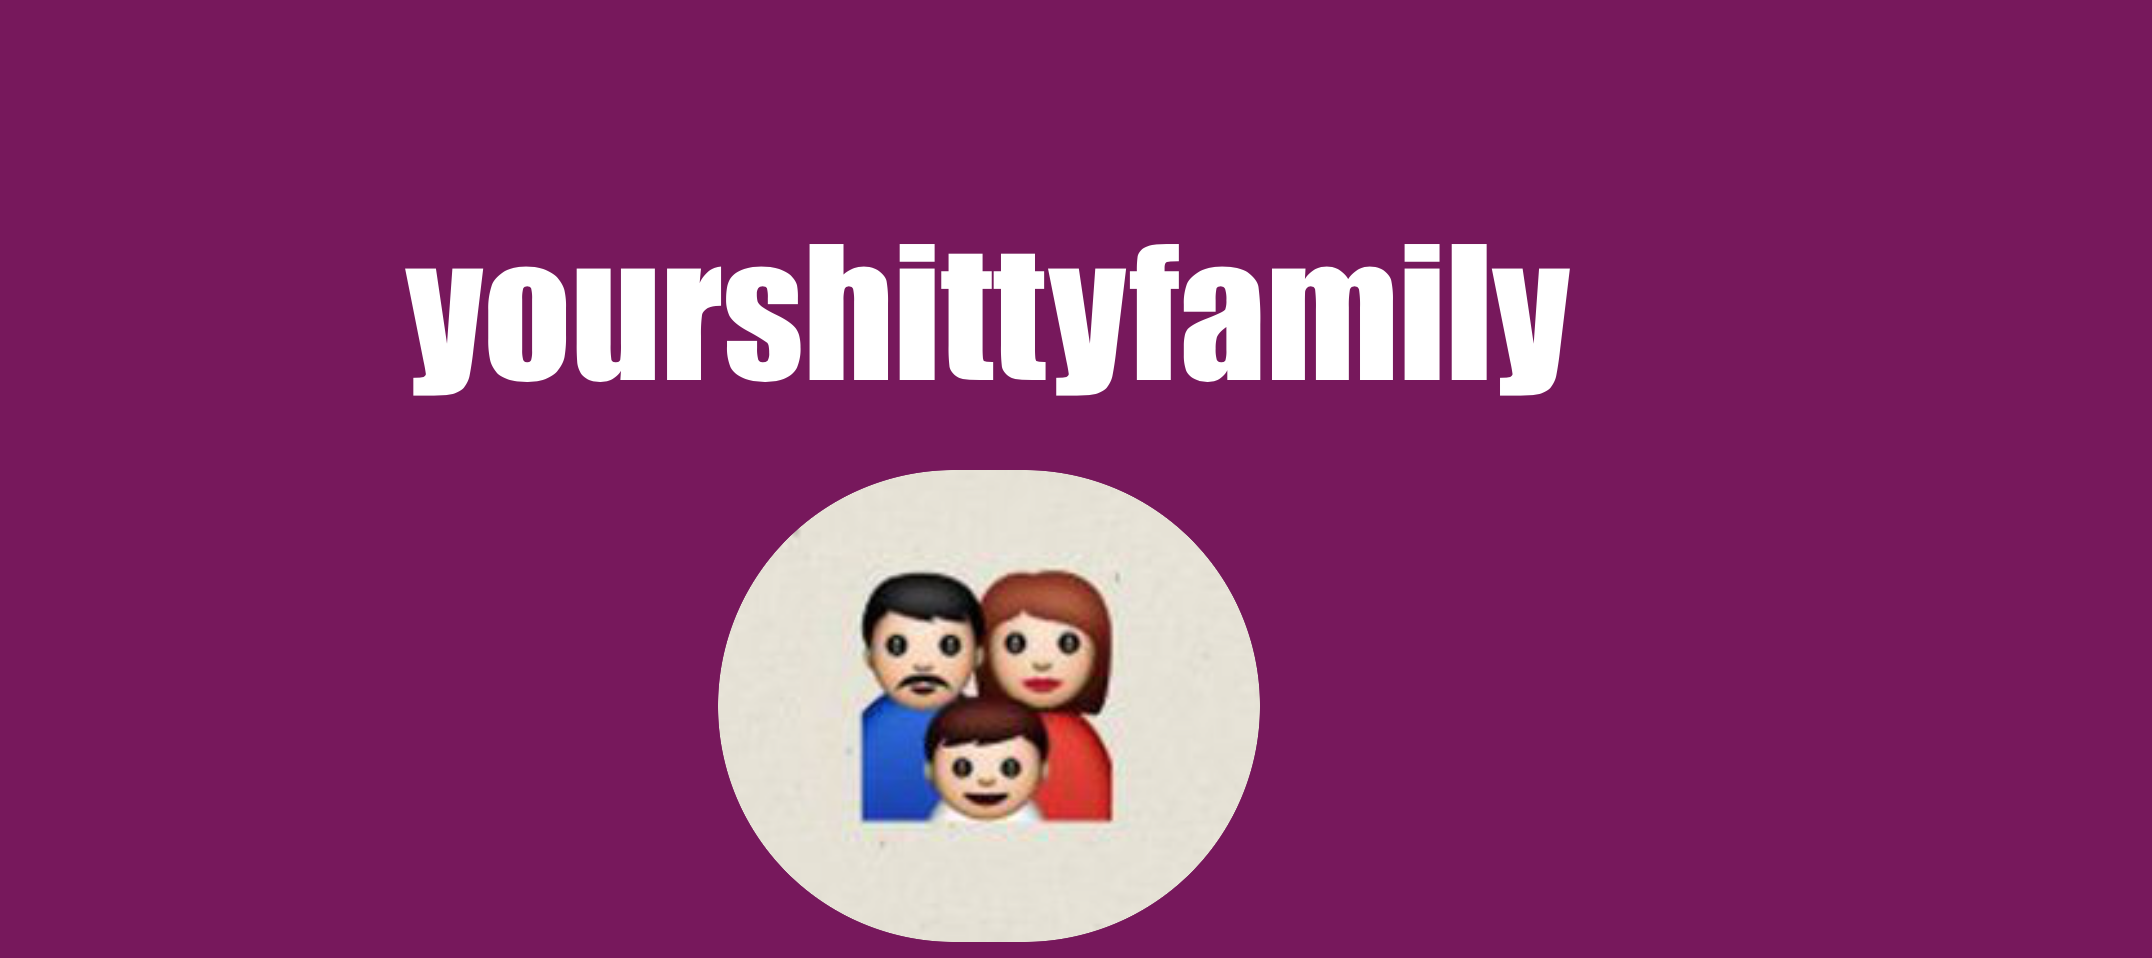 YourShittyFamily, quand ta famille t'envoie des SMS...